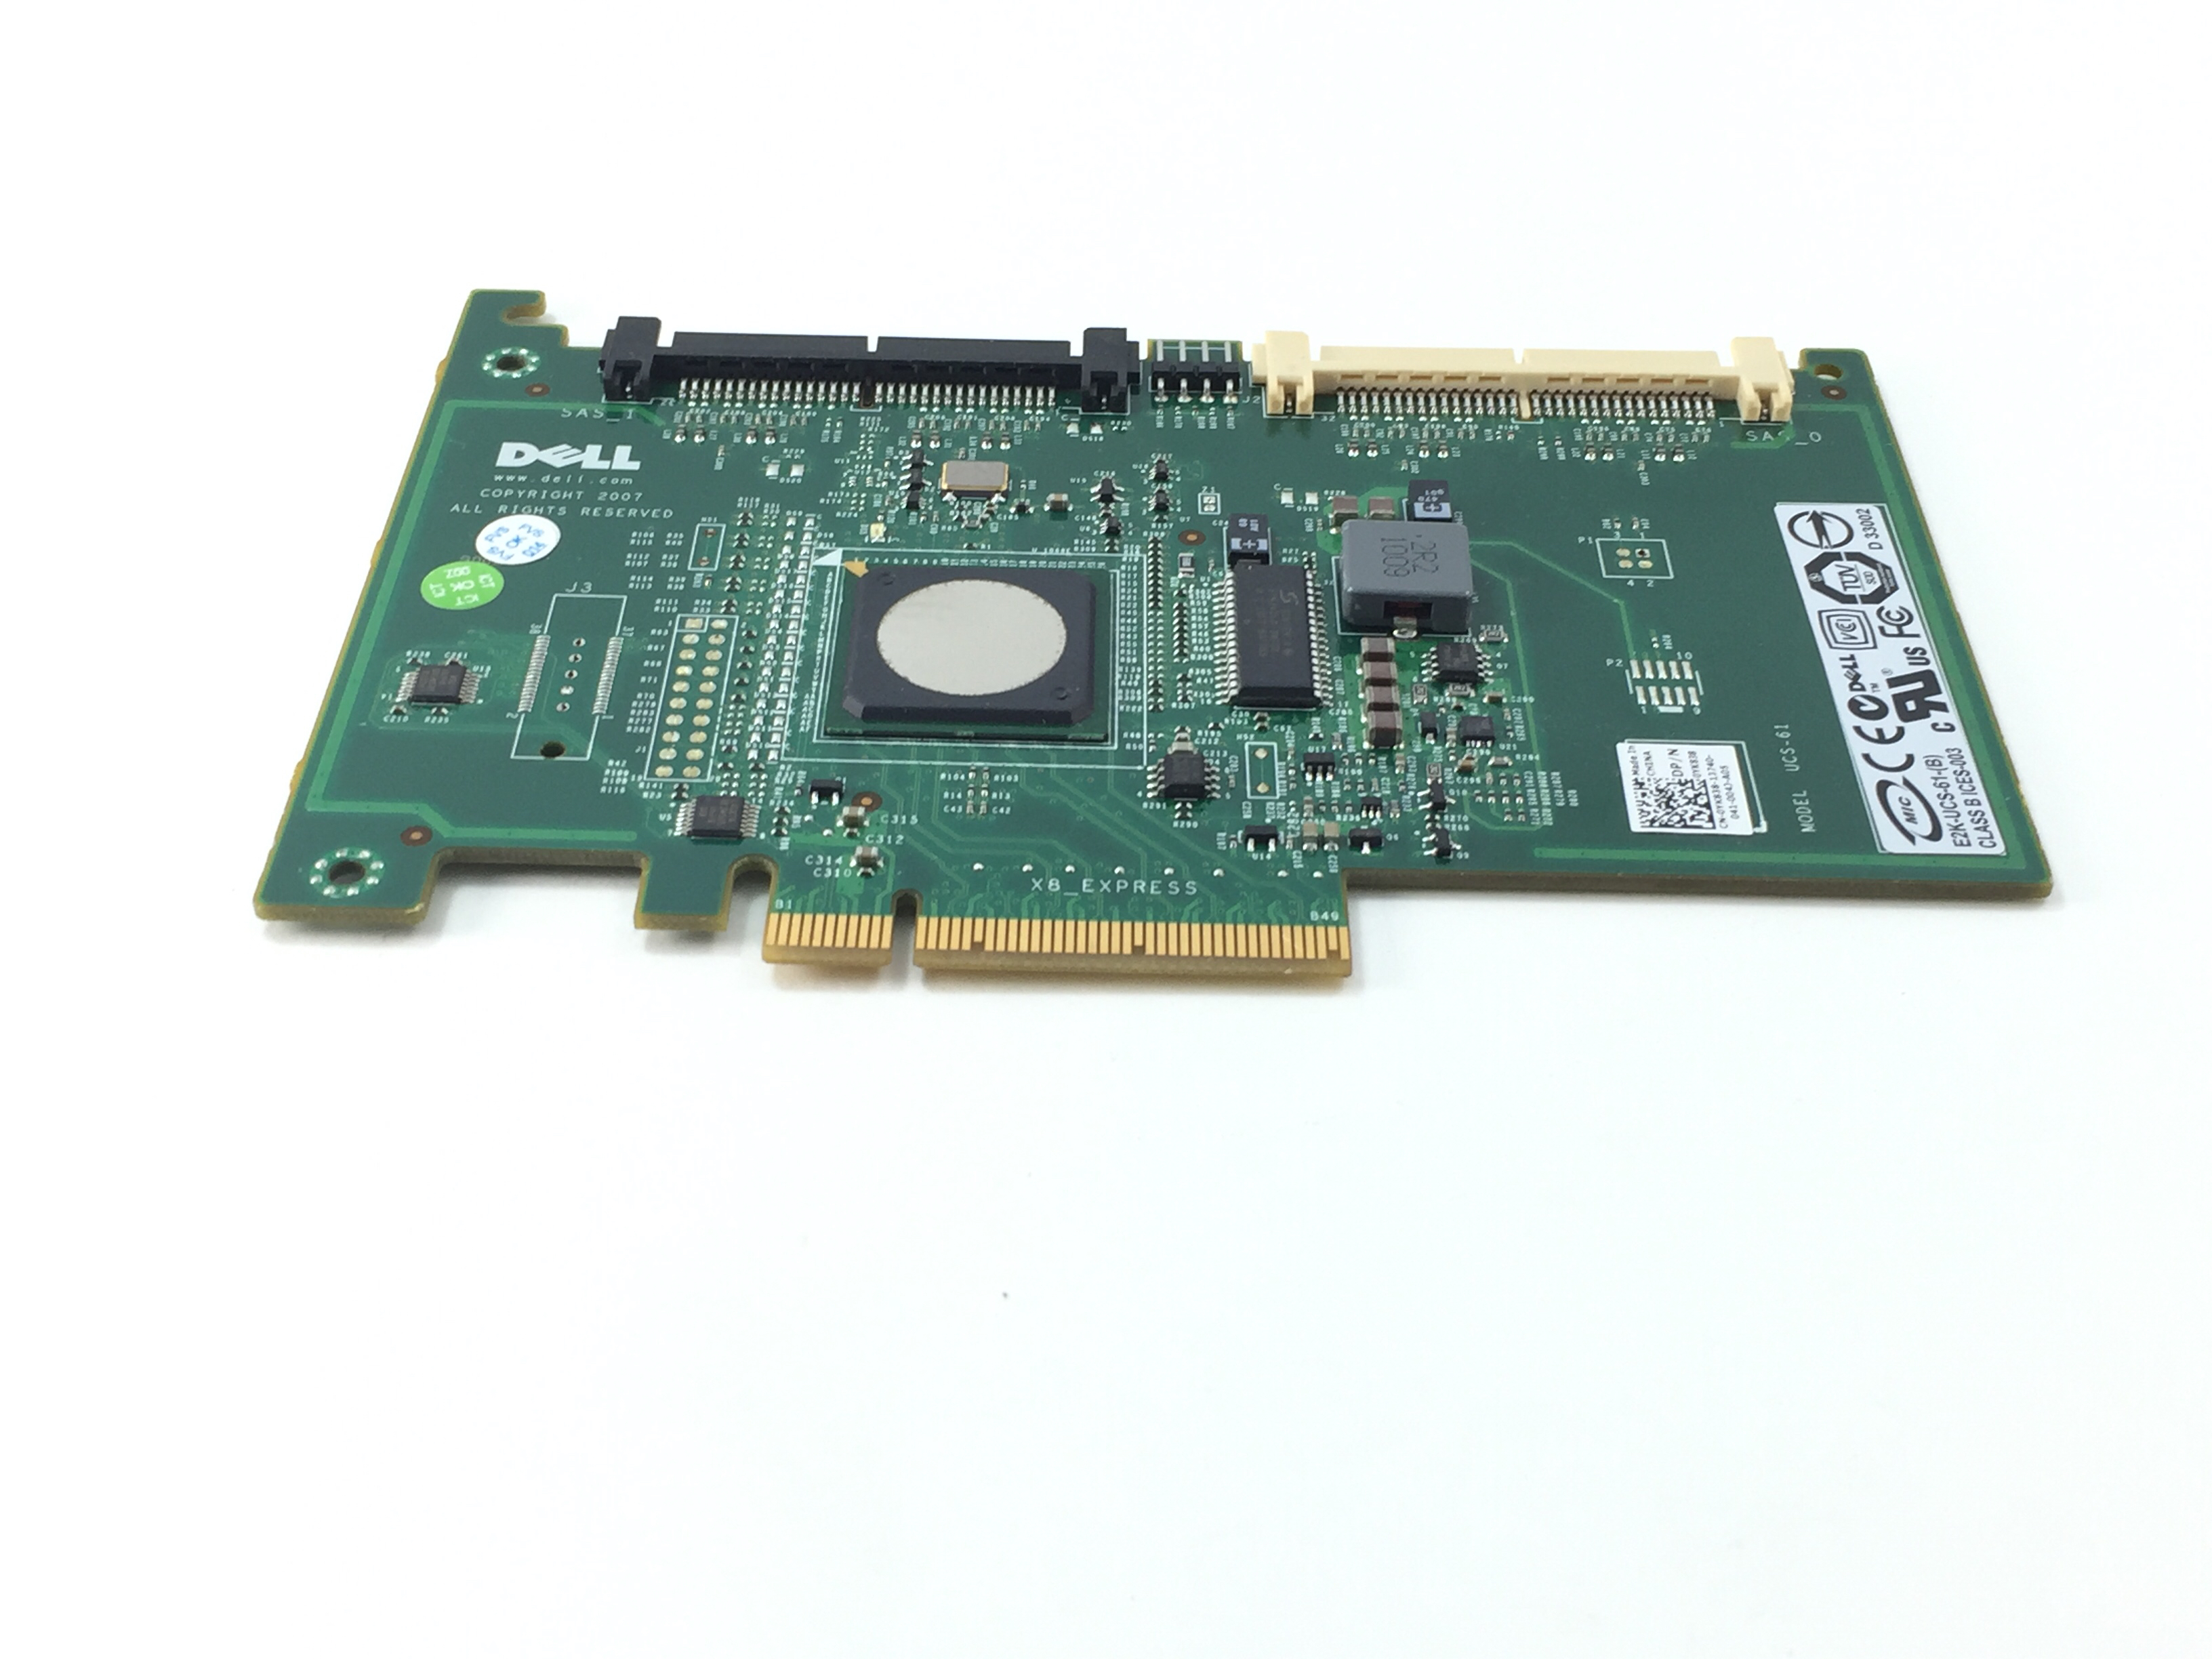 Dell PowerEdge  6I/R SAS/SATA Raid Controller (YK838)